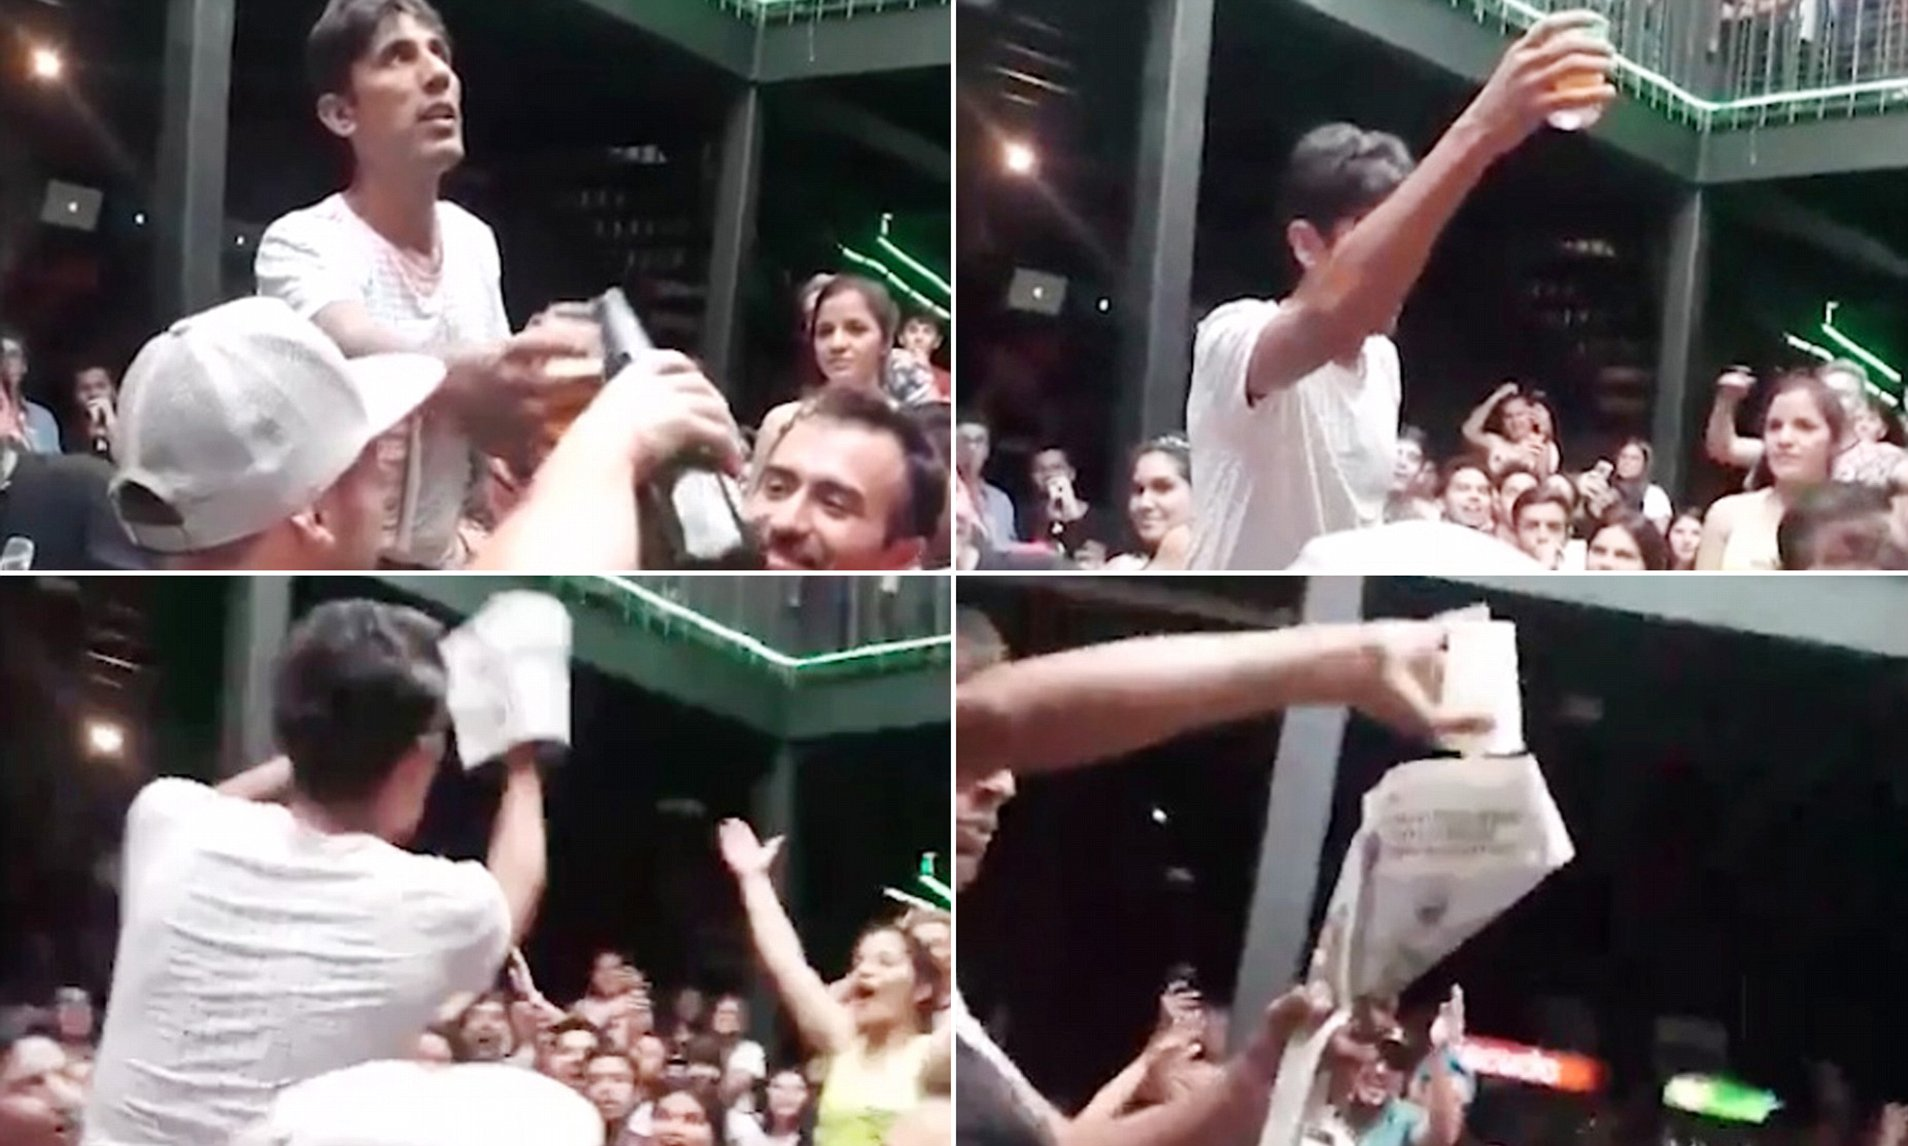 Guy makes beer disappear/reappear…